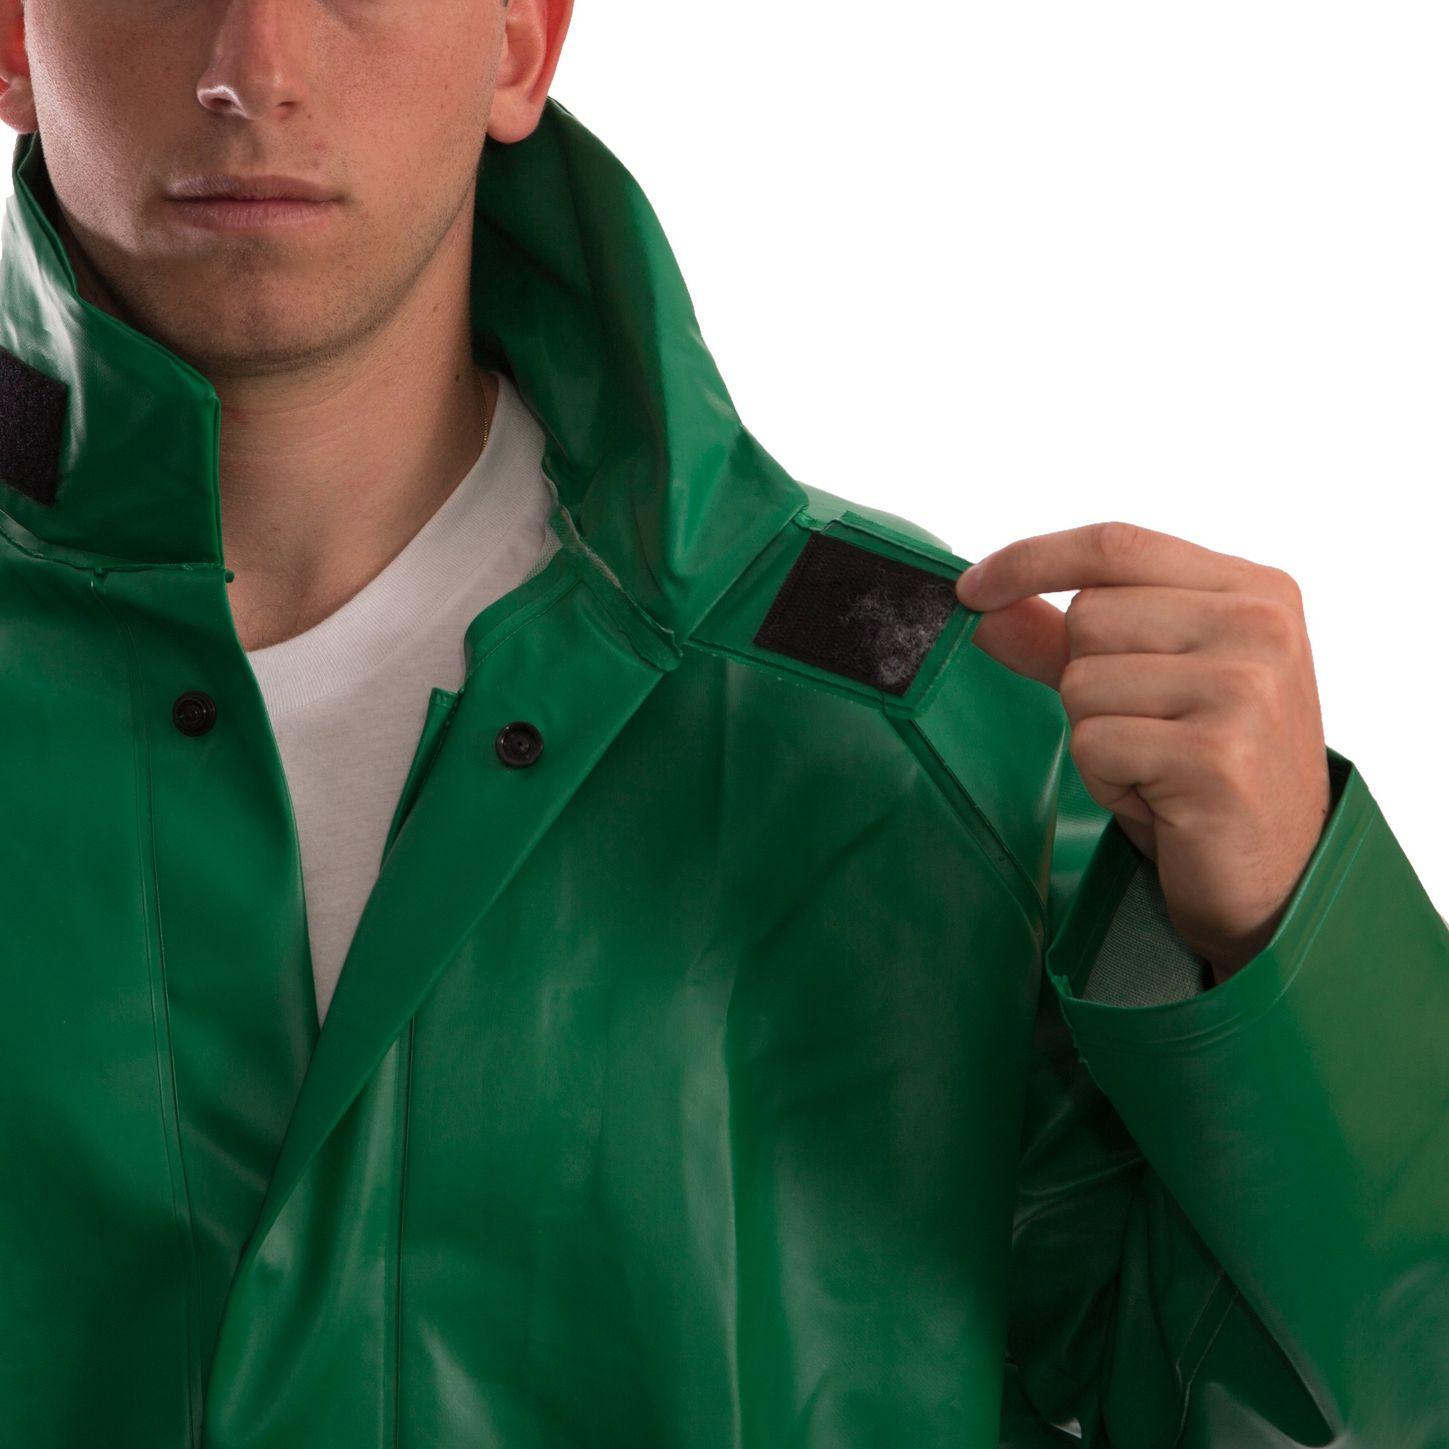 tingley-j41008-safetyflex-fire-resistant-jacket-pvc-coated-chemical-resistant-with-high-collar-example.jpg